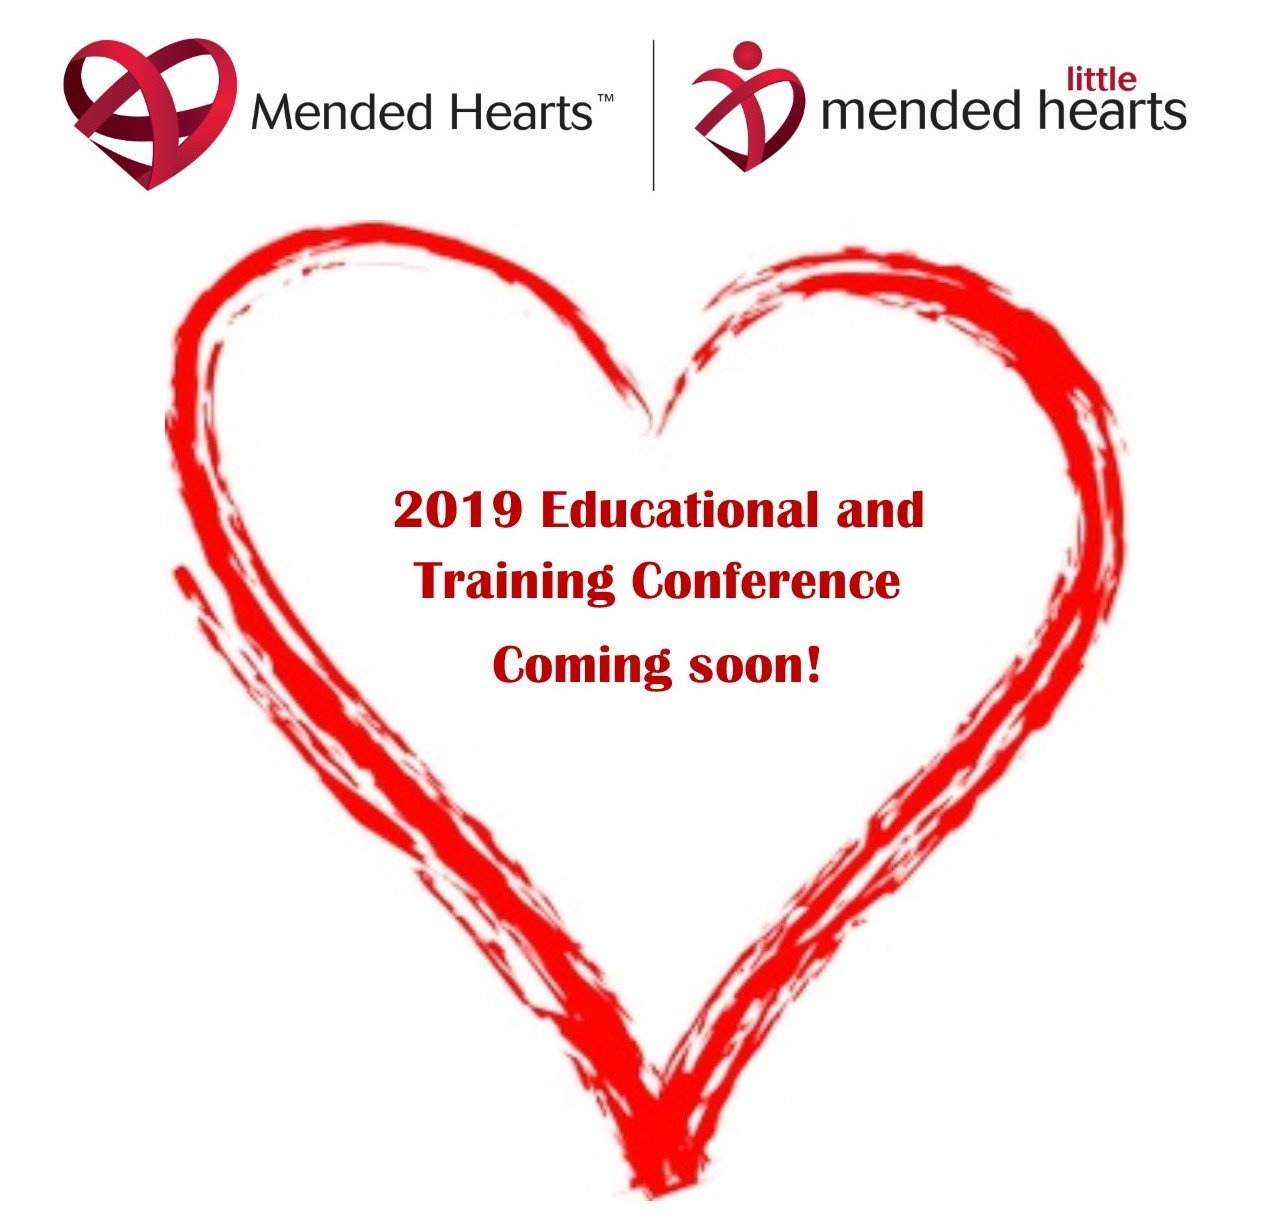 National Education And Training Conference Mended Hearts Posts